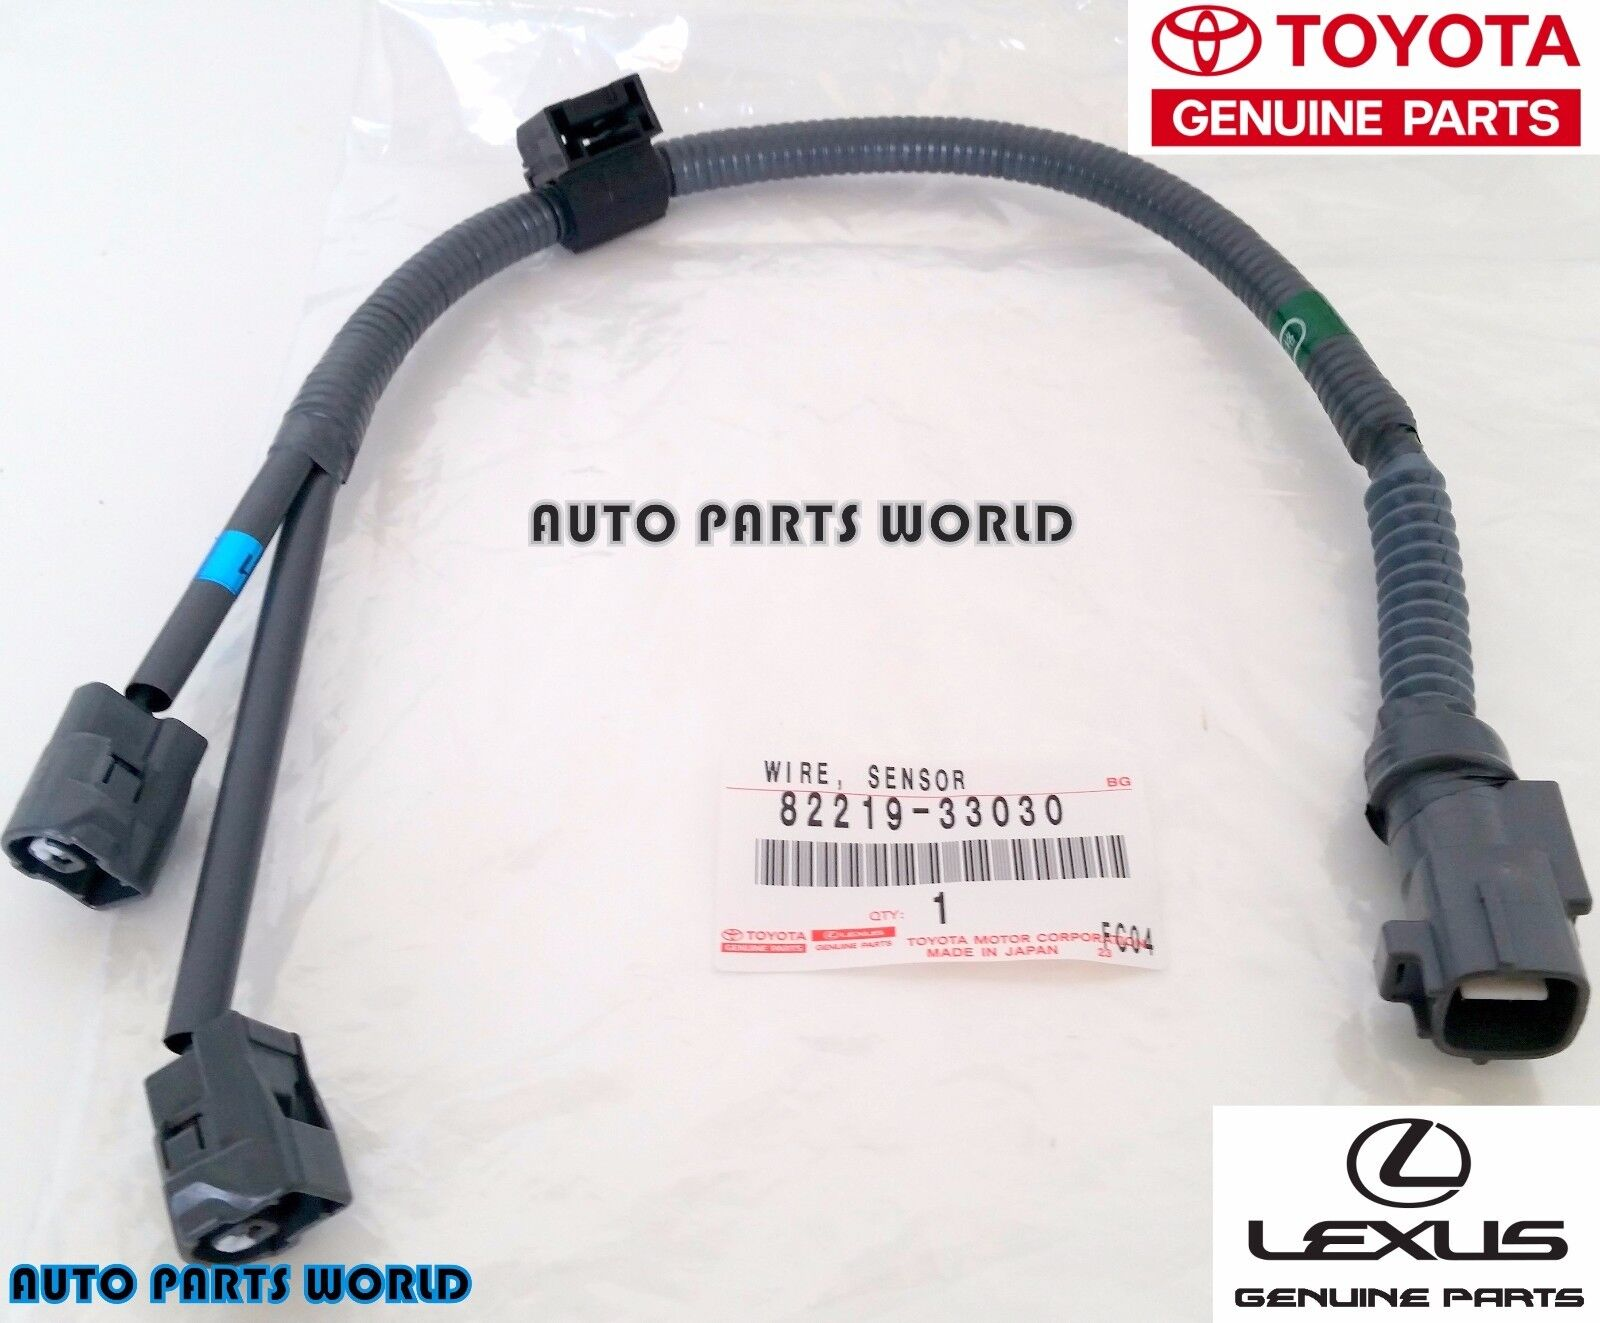 New Genuine Toyota Lexus Oem Knock Sensor Wire Harness 82219 33030